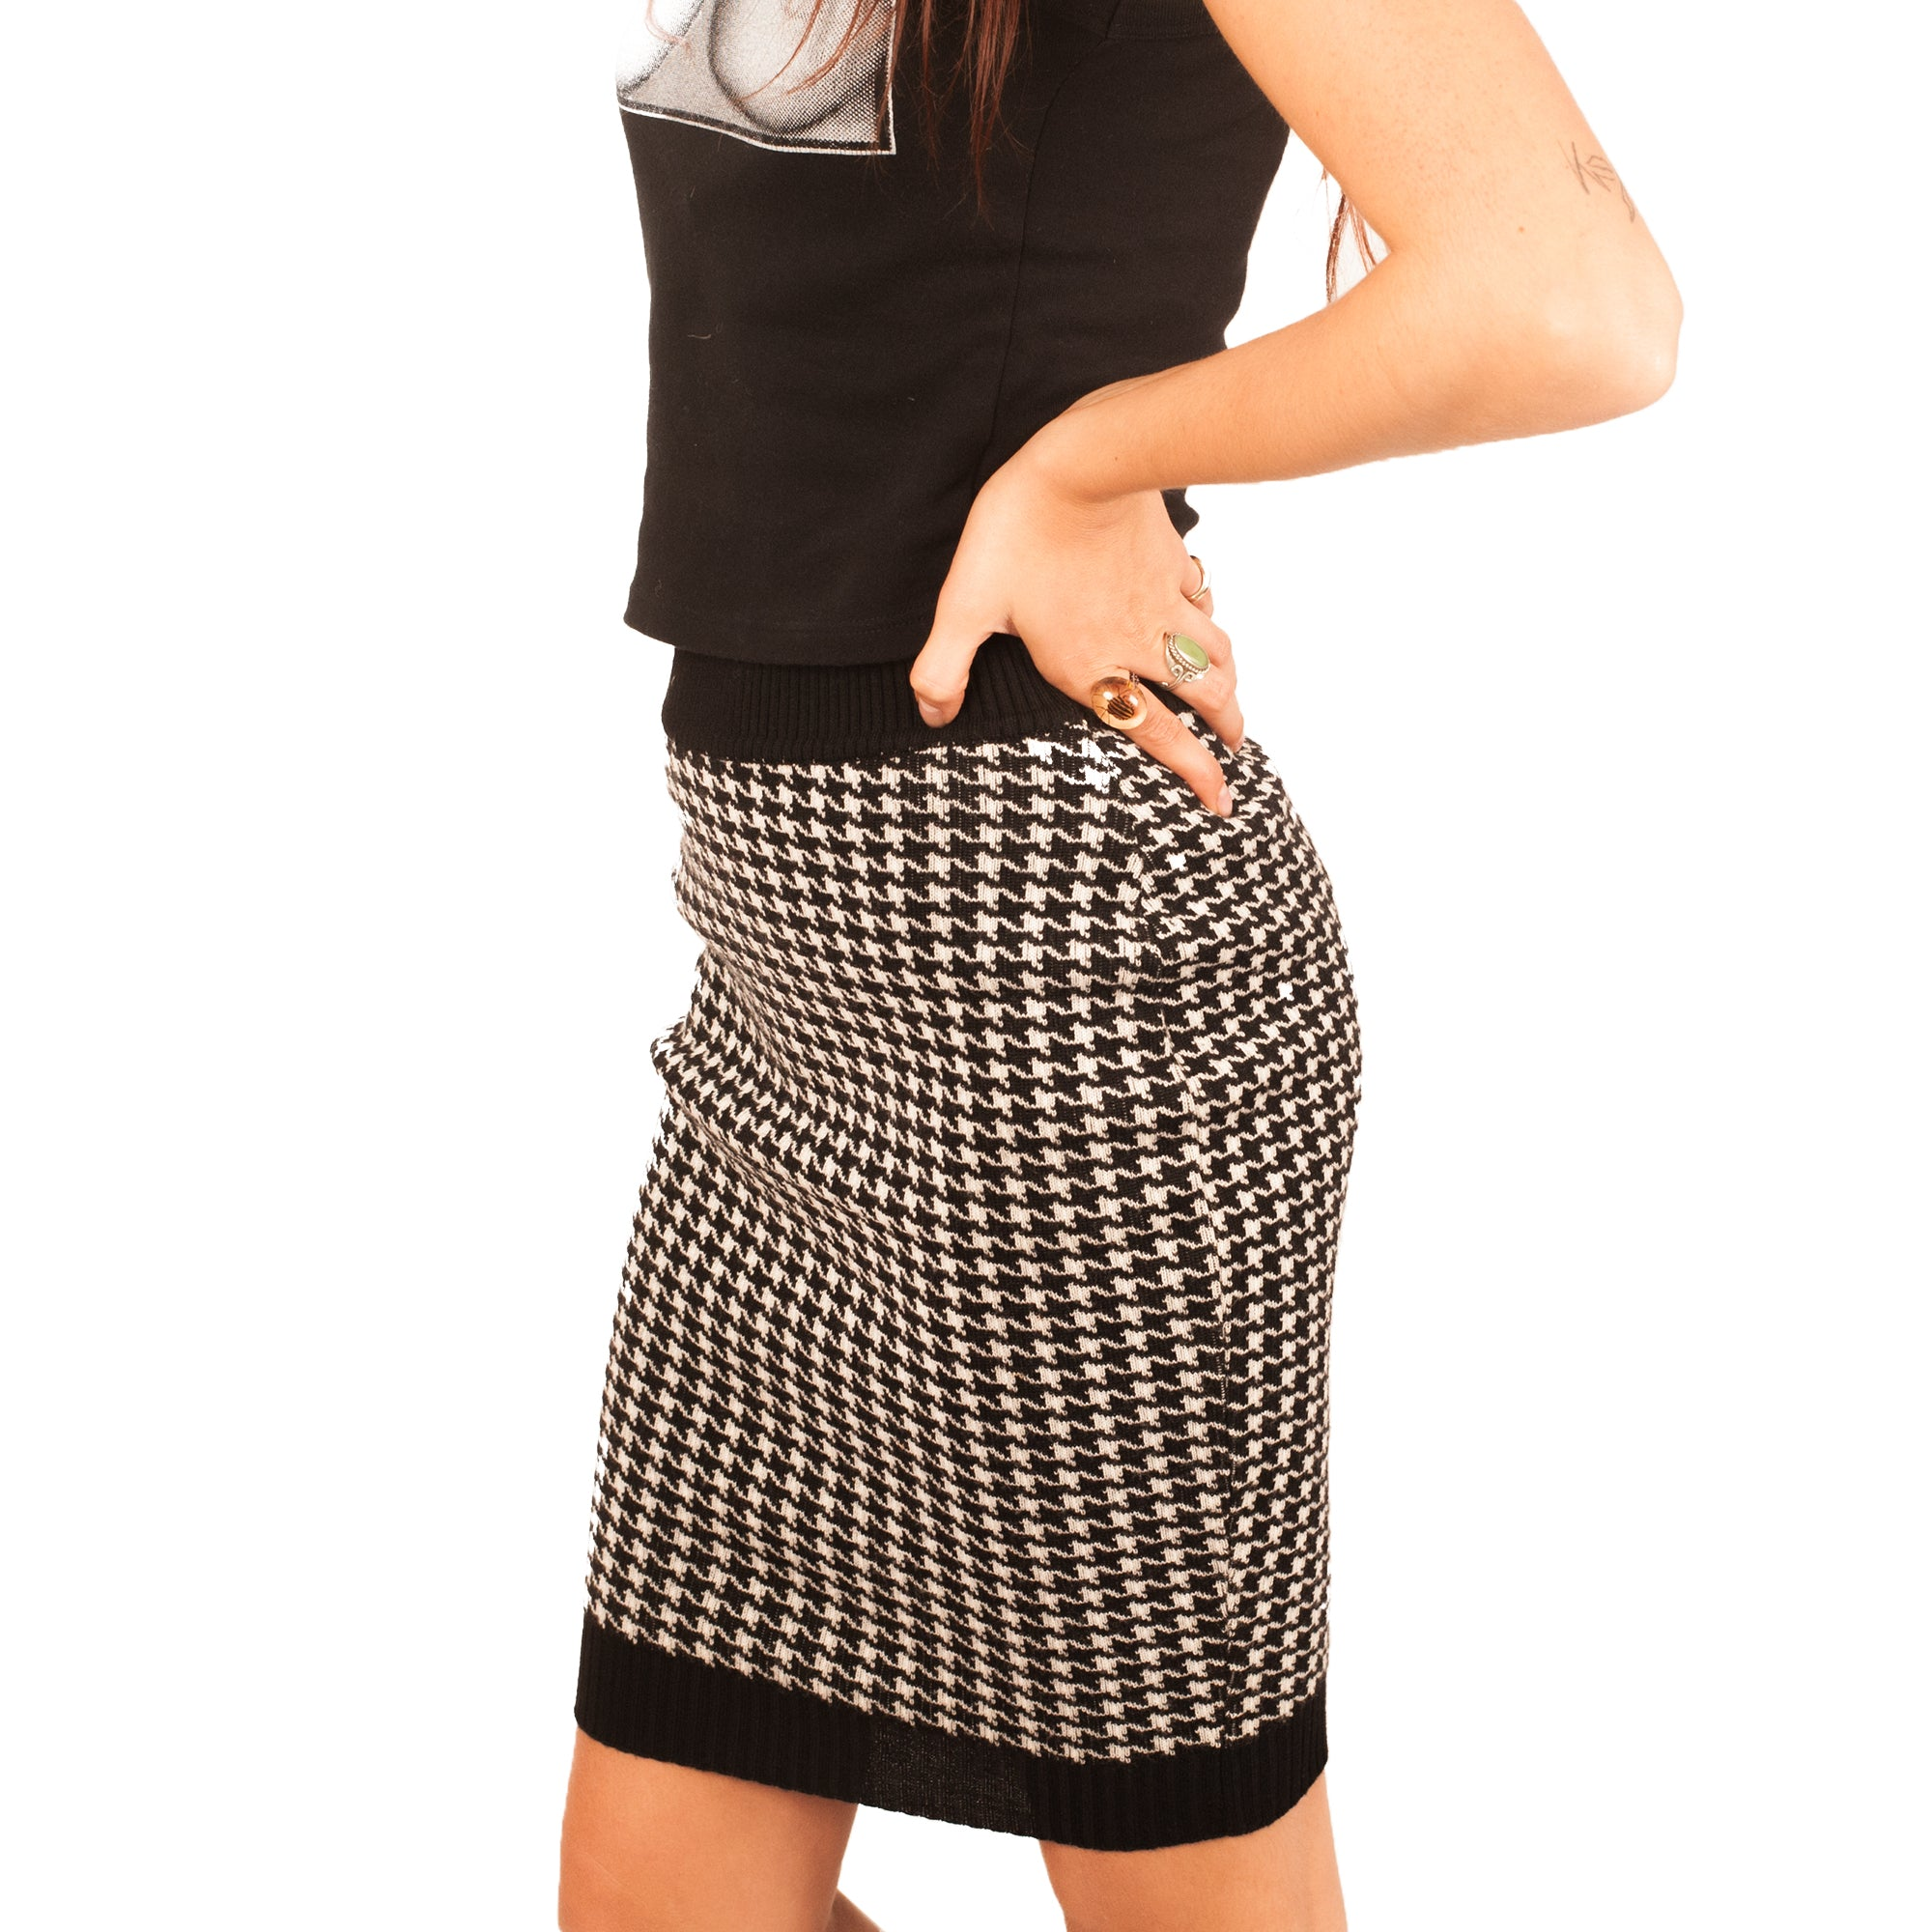 Dolce and Gabbana Skirt (Houndstooth) UK 6-10